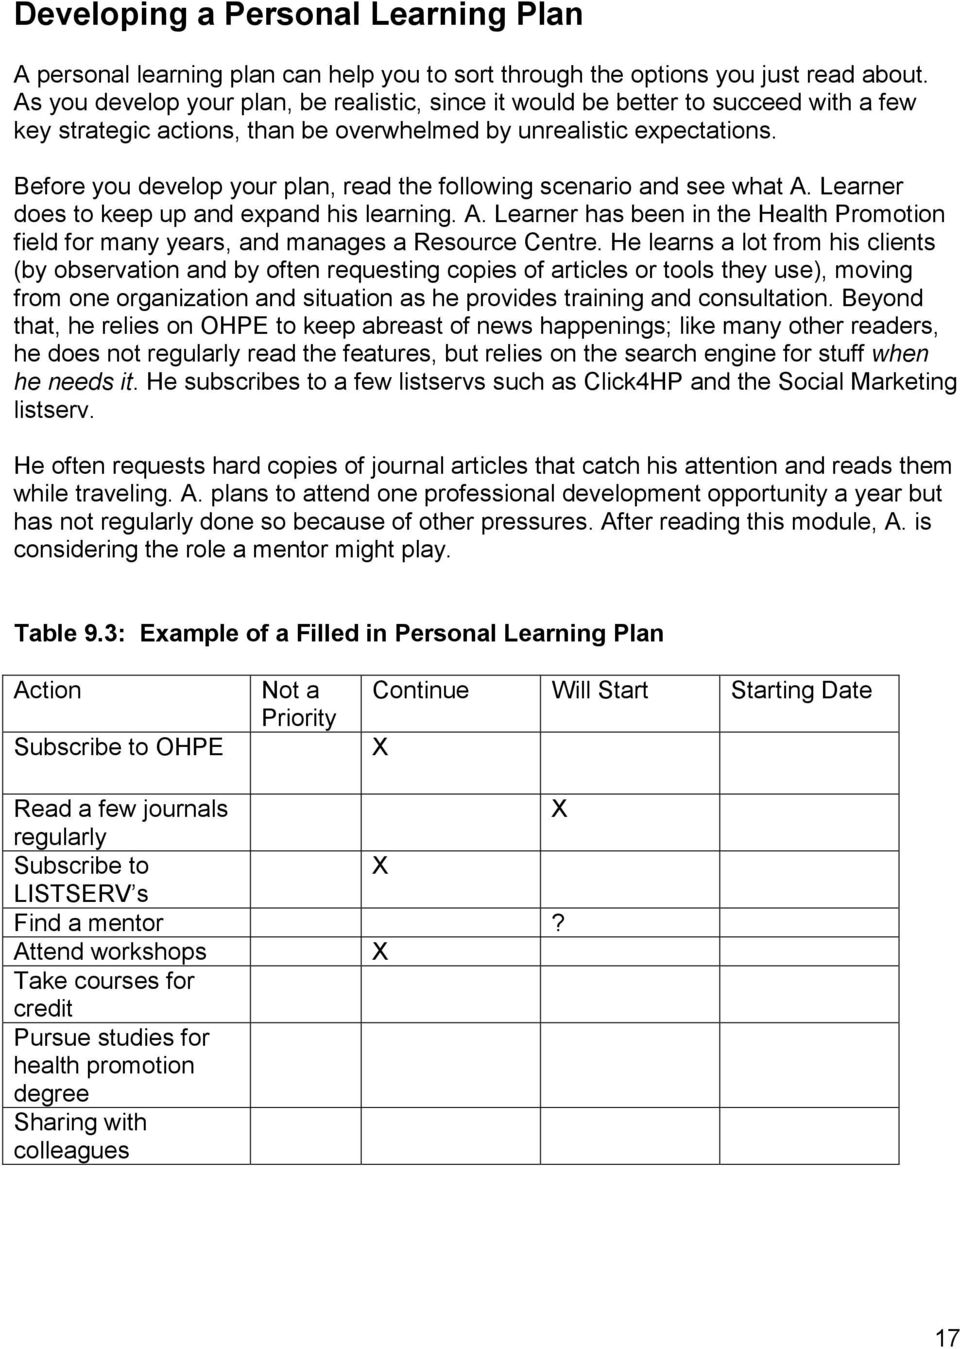 Before you develop your plan, read the following scenario and see what A. Learner does to keep up and expand his learning. A. Learner has been in the Health Promotion field for many years, and manages a Resource Centre.